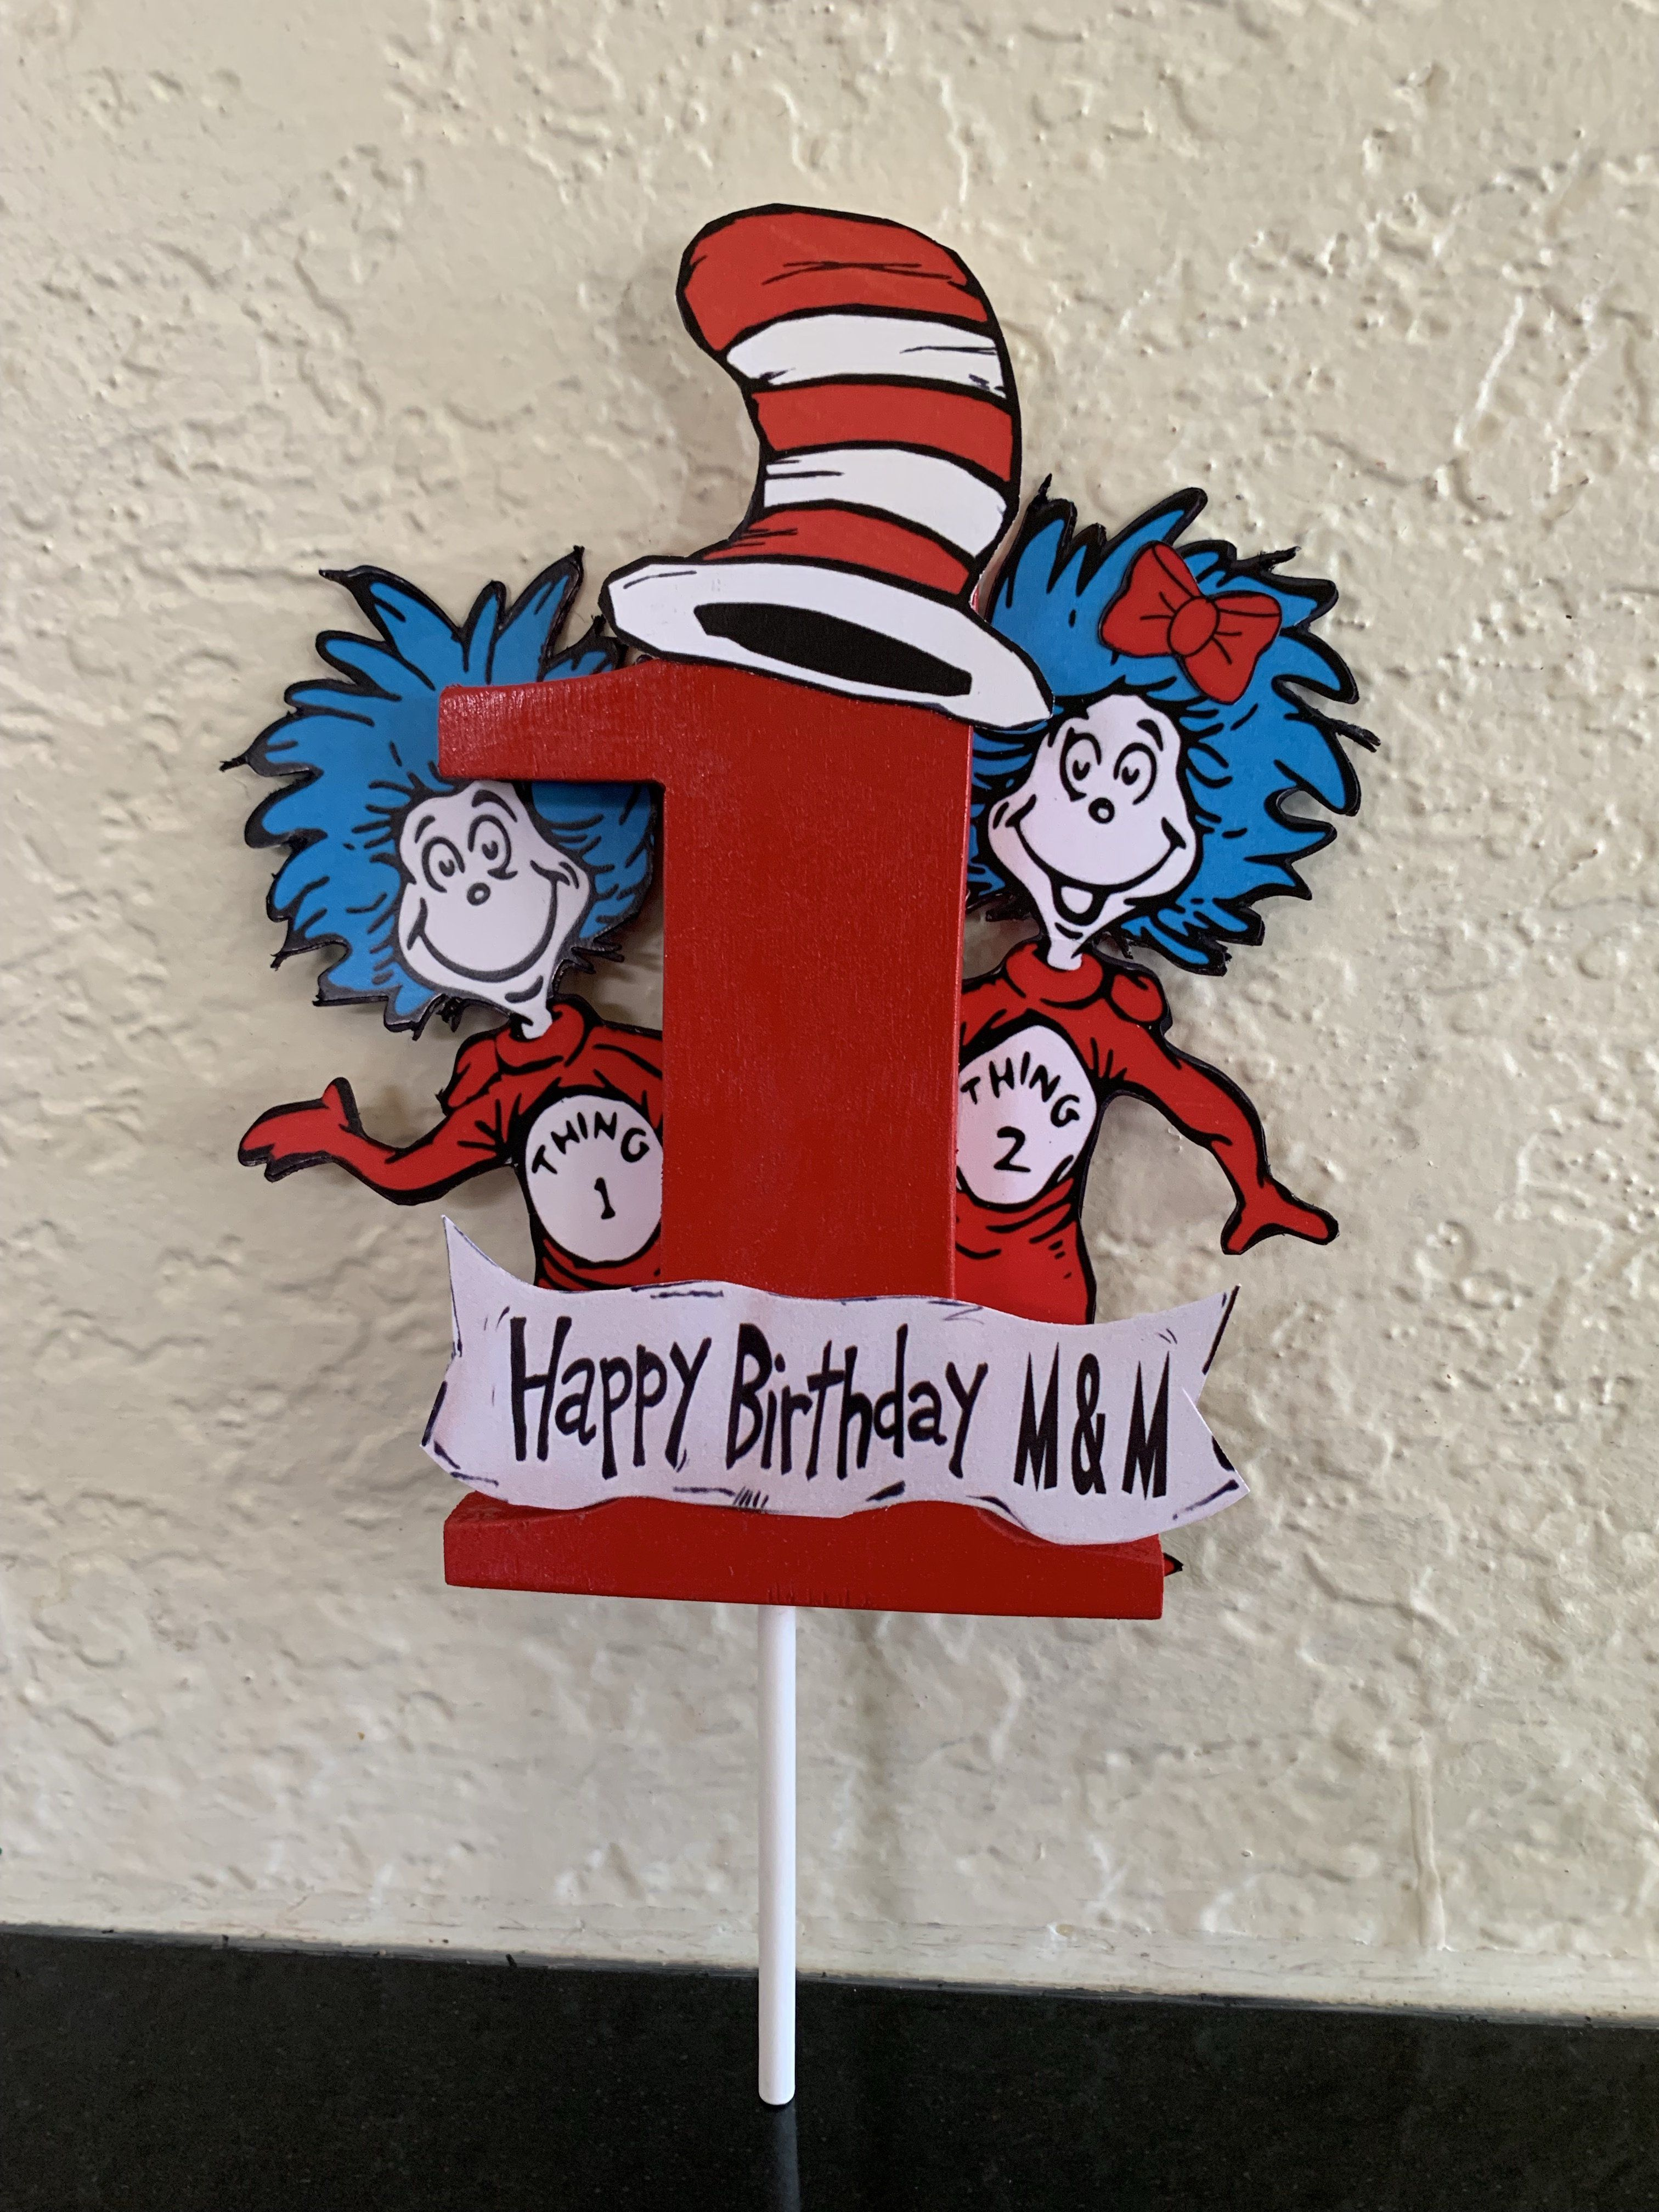 Admirable Thing 1 And 2 Dr Seuss Cake Topper With Wooden 1 Dr Seuss Personalised Birthday Cards Epsylily Jamesorg